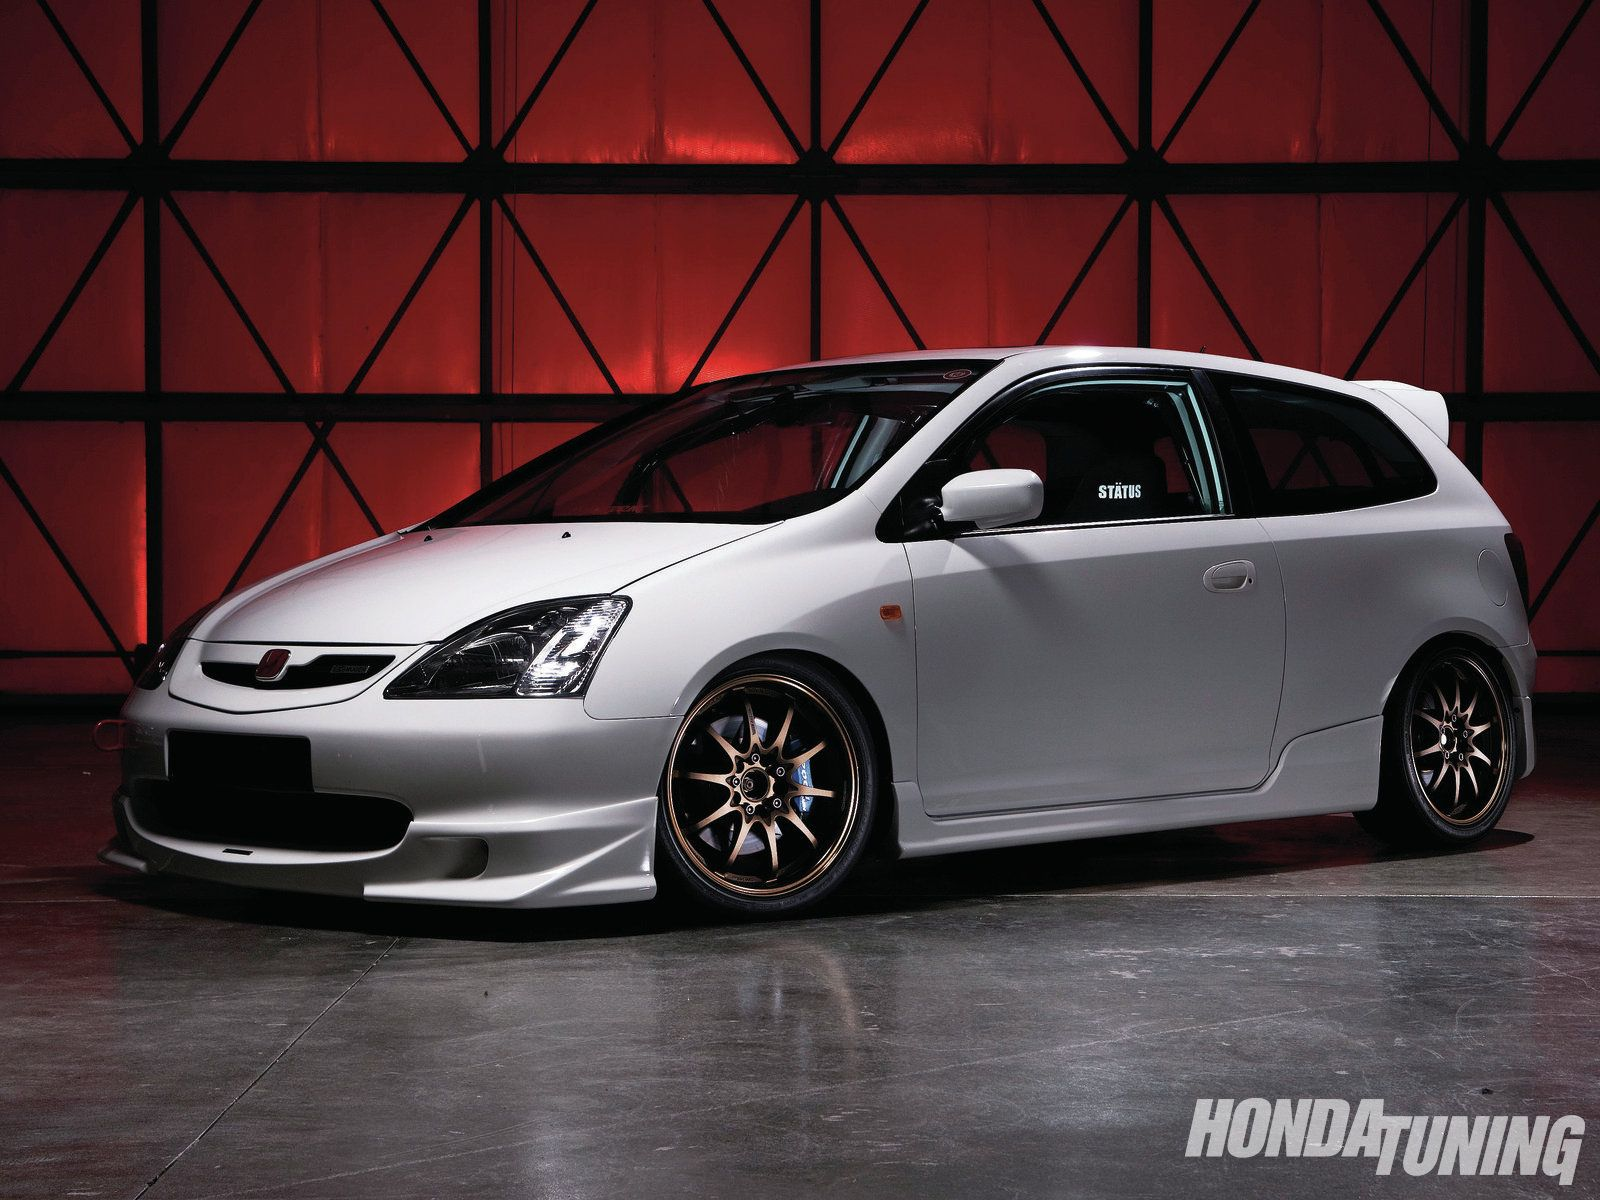 2003 Honda Civic type-r (ep3) - pictures, information and specs - Auto-Database.com